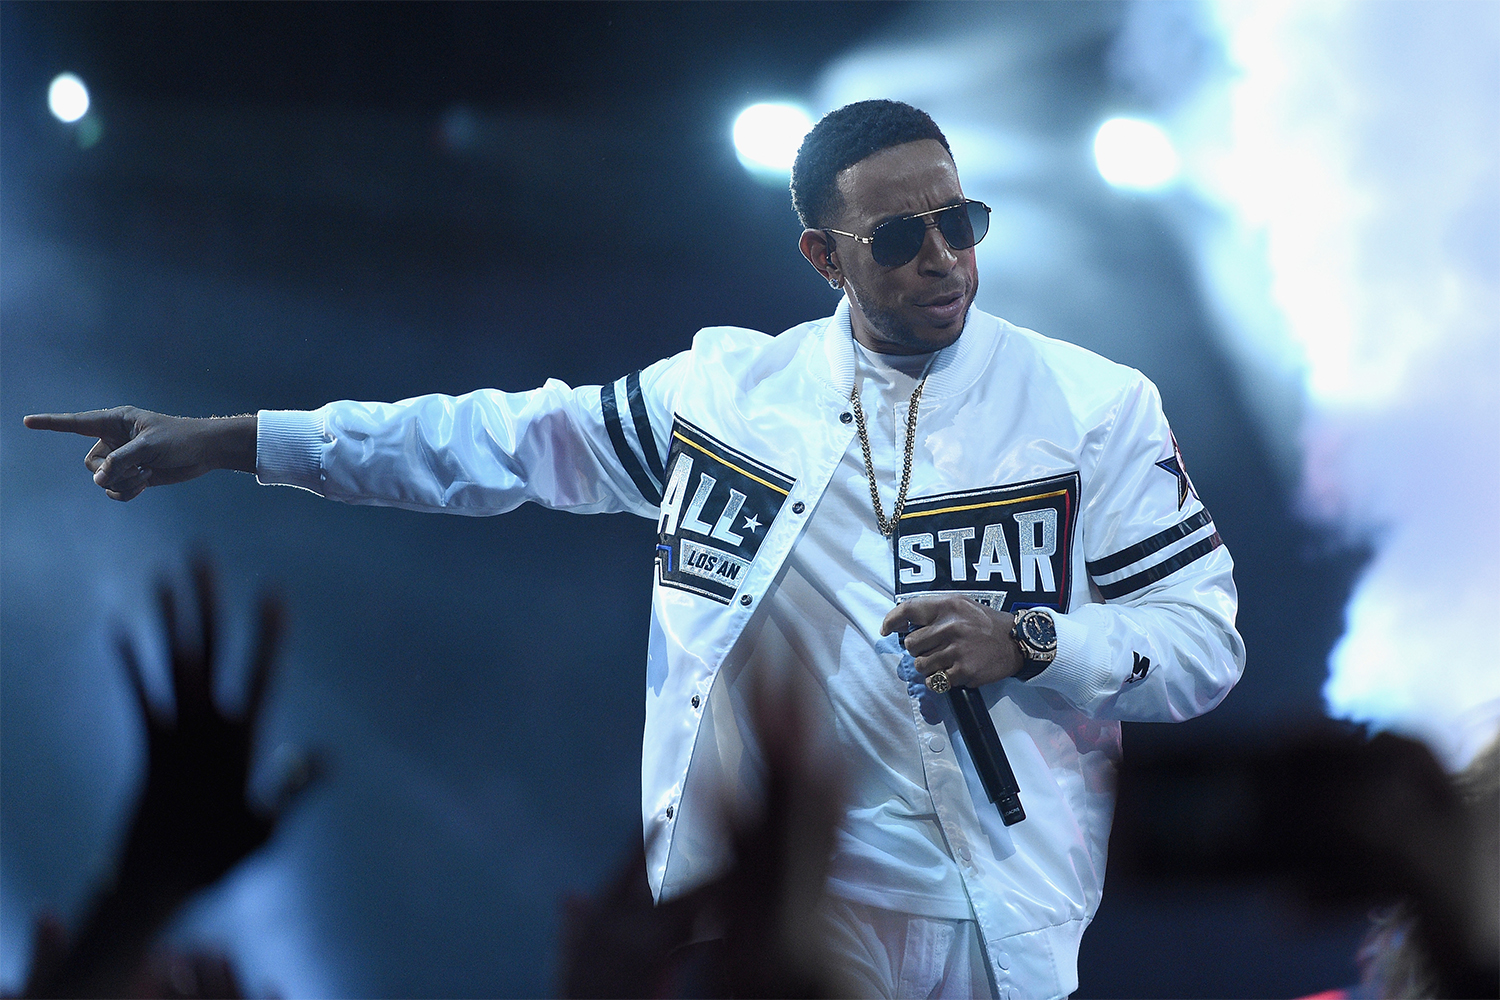 Ludacris, an annual All Star Game mainstay, will be hosting one of the many parties around Chicago this weekend